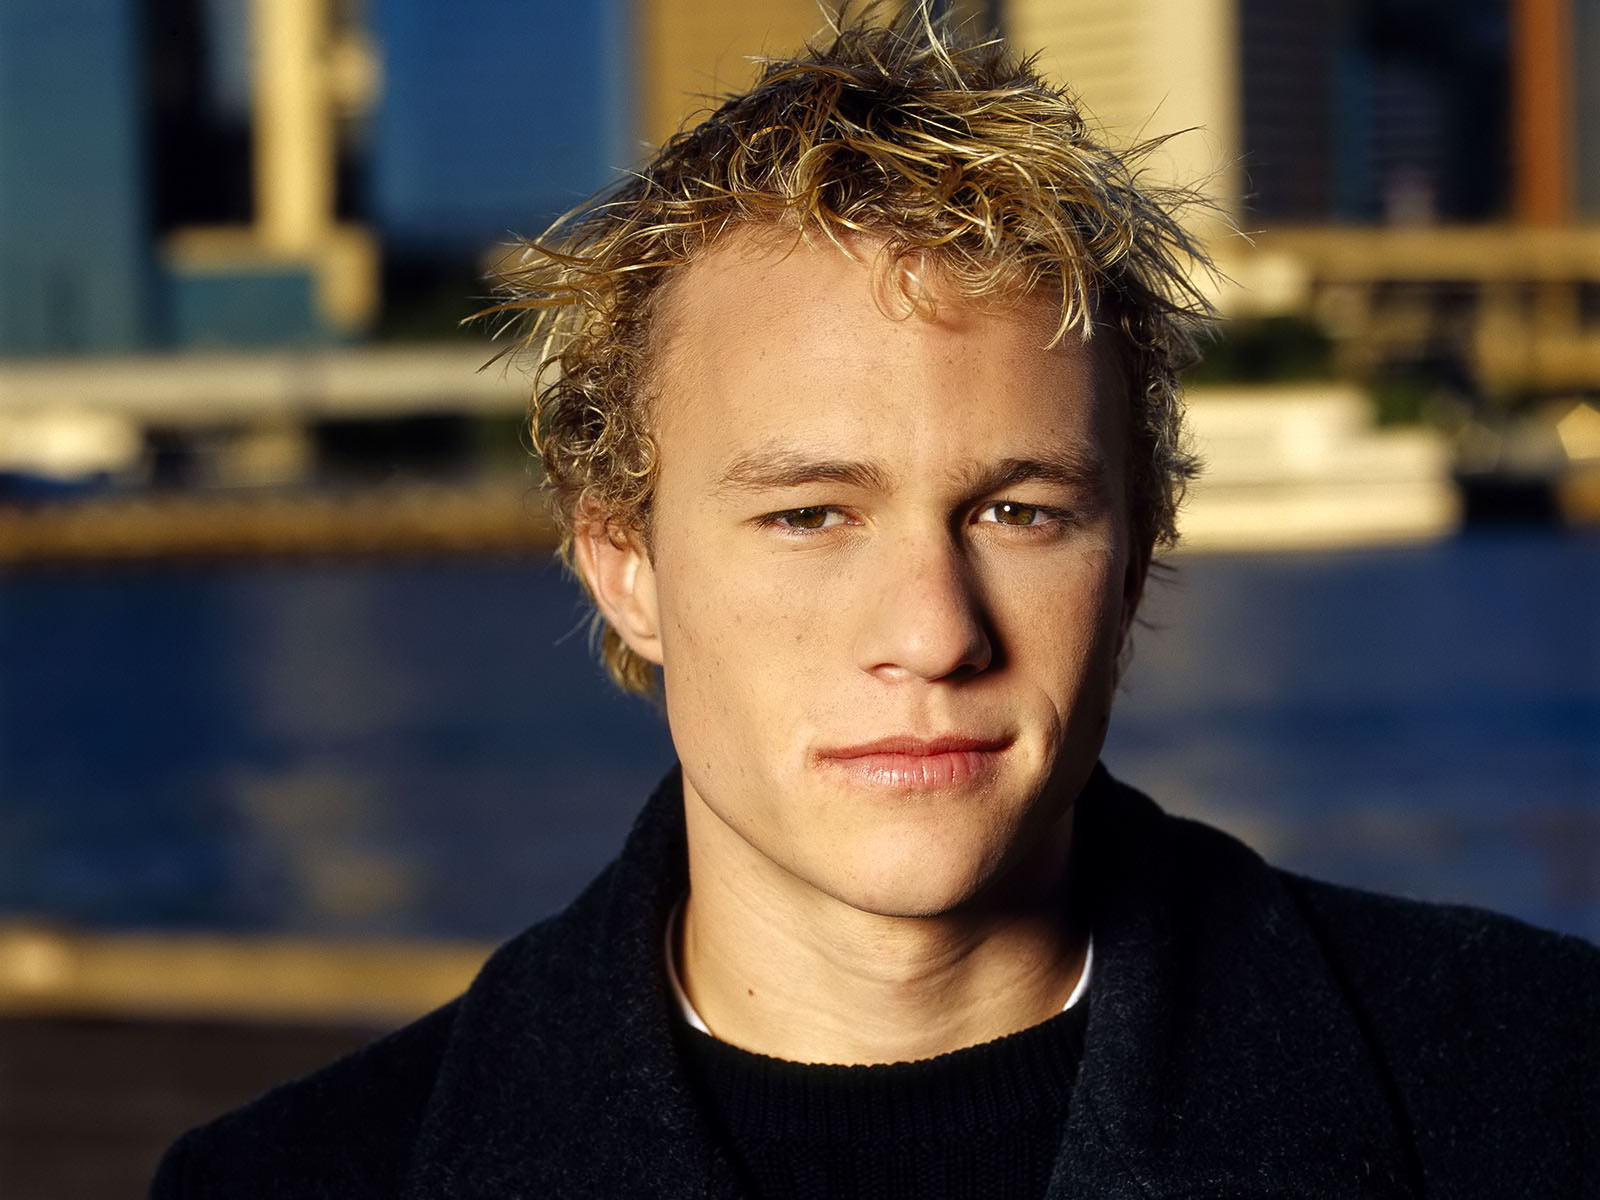 http://3.bp.blogspot.com/-4fO1_565nXw/TZF1eGZpbOI/AAAAAAAAAA0/Ohj_0gz2c0A/s1600/Heath_Ledger_Actor.jpg